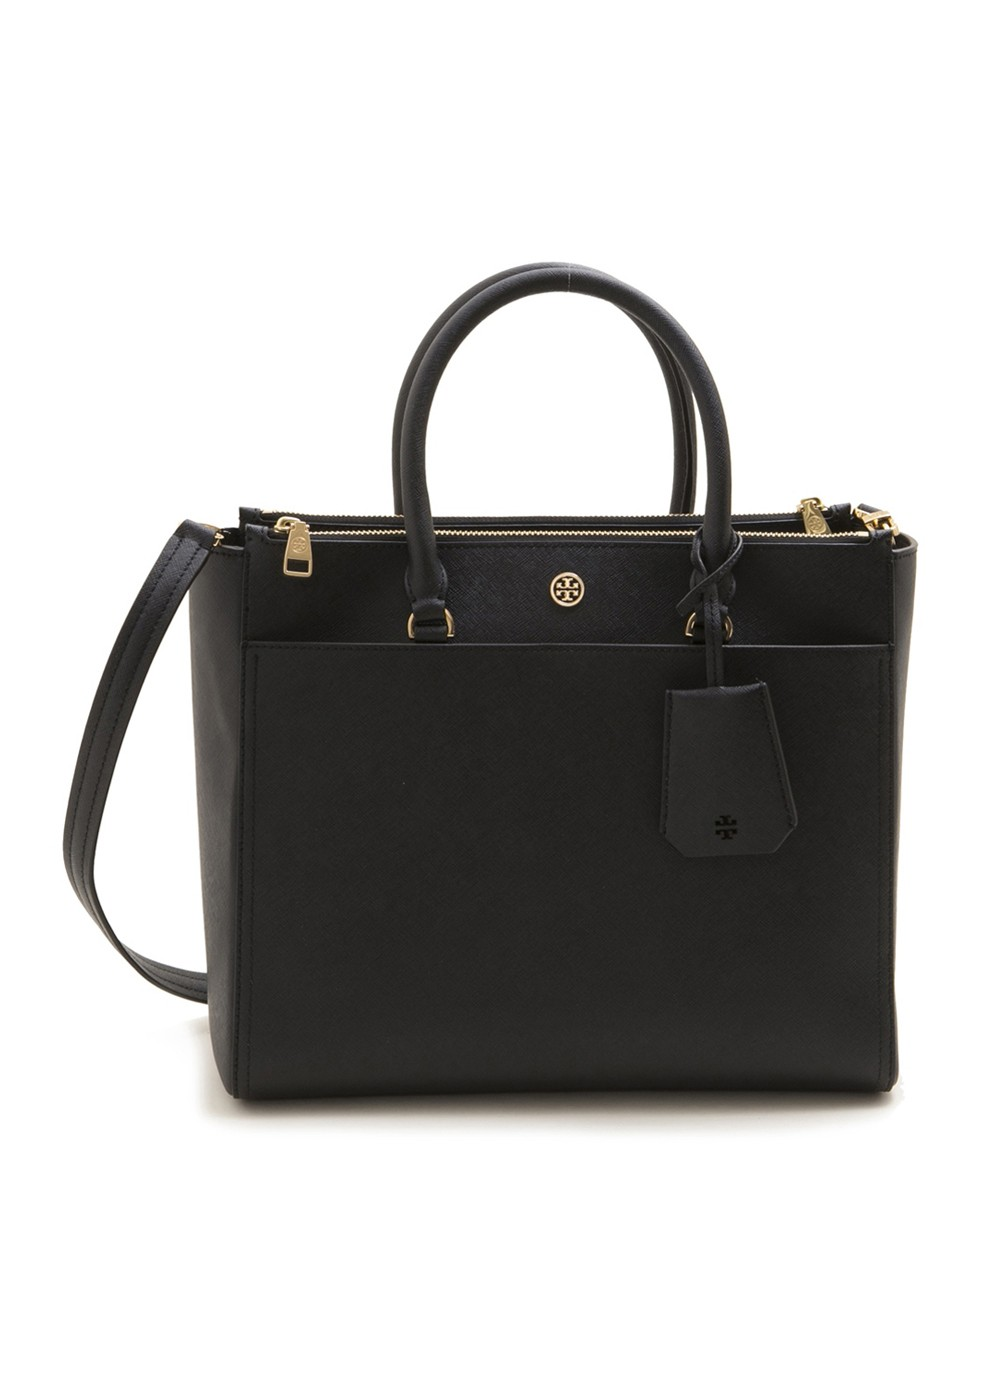 TORY BURCH|トリバーチ|ROBINSON|ロビンソン|SMALL ZIP TOTE(b)